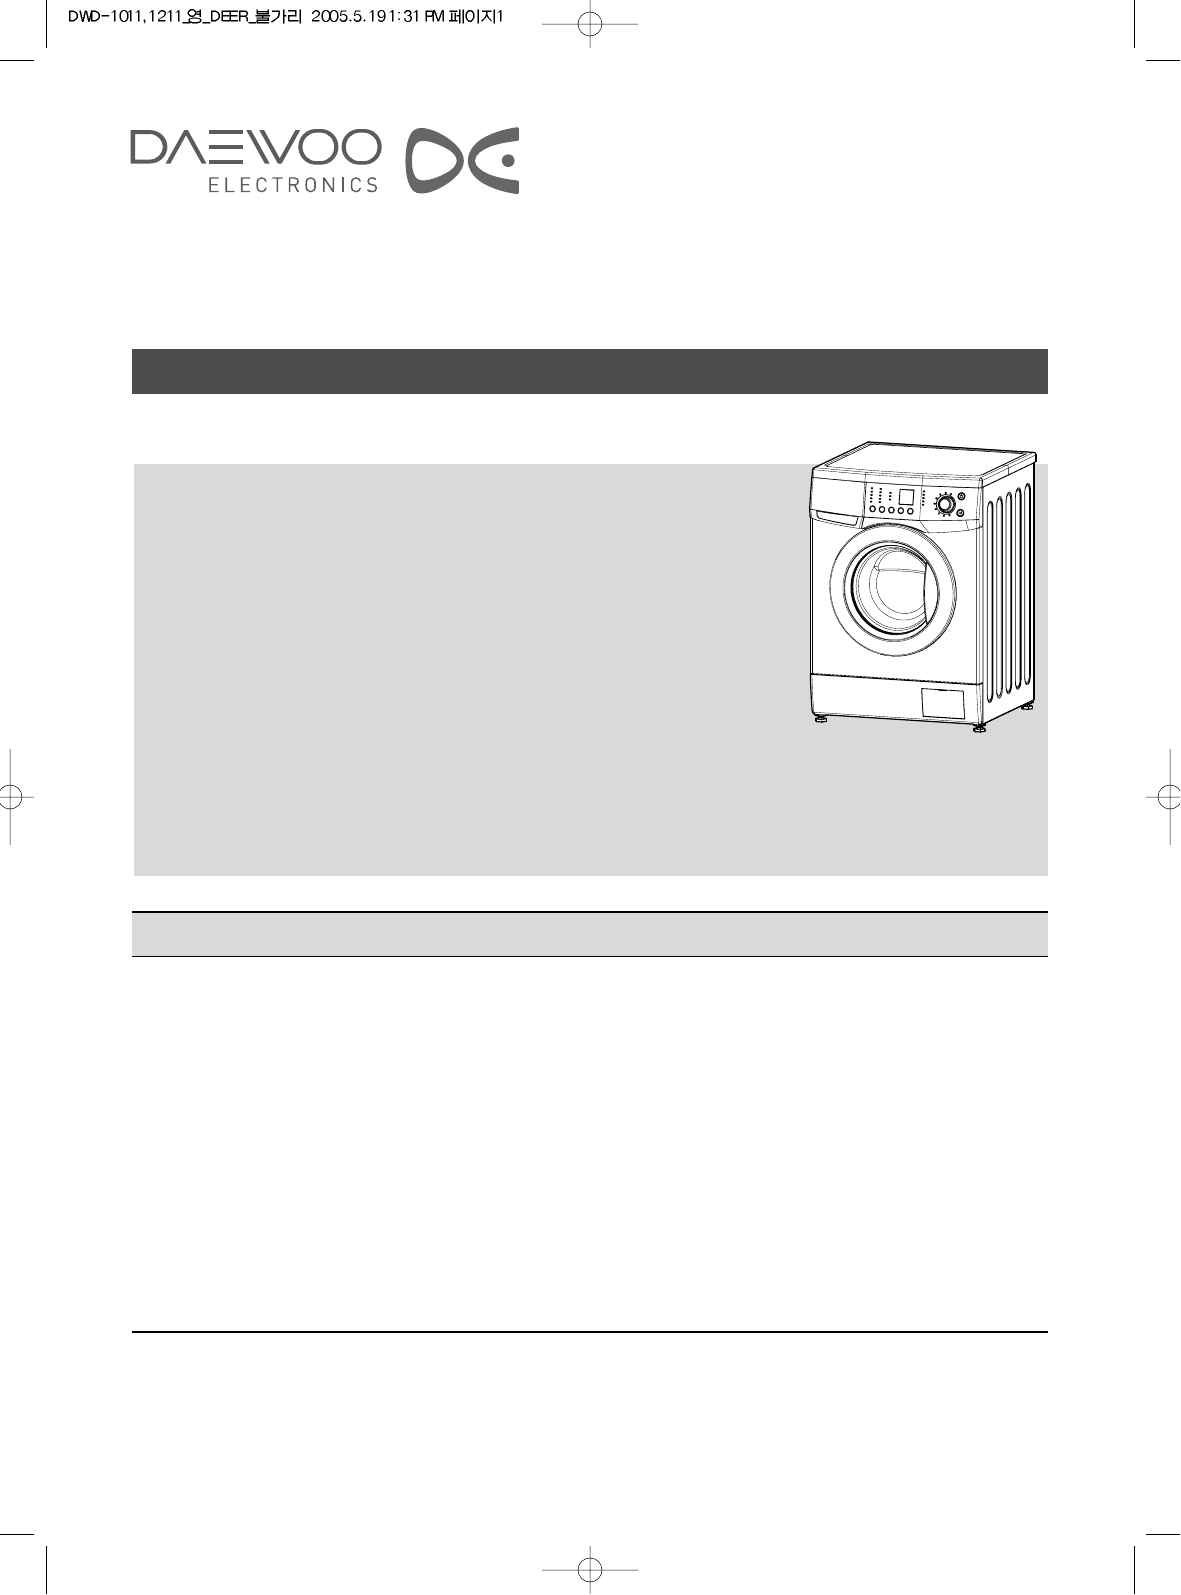 daewoo washer dryer 1013 user guide manualsonline com rh laundry manualsonline com Daewoo Dryer Manual Whirlpool Dryer Not Heating